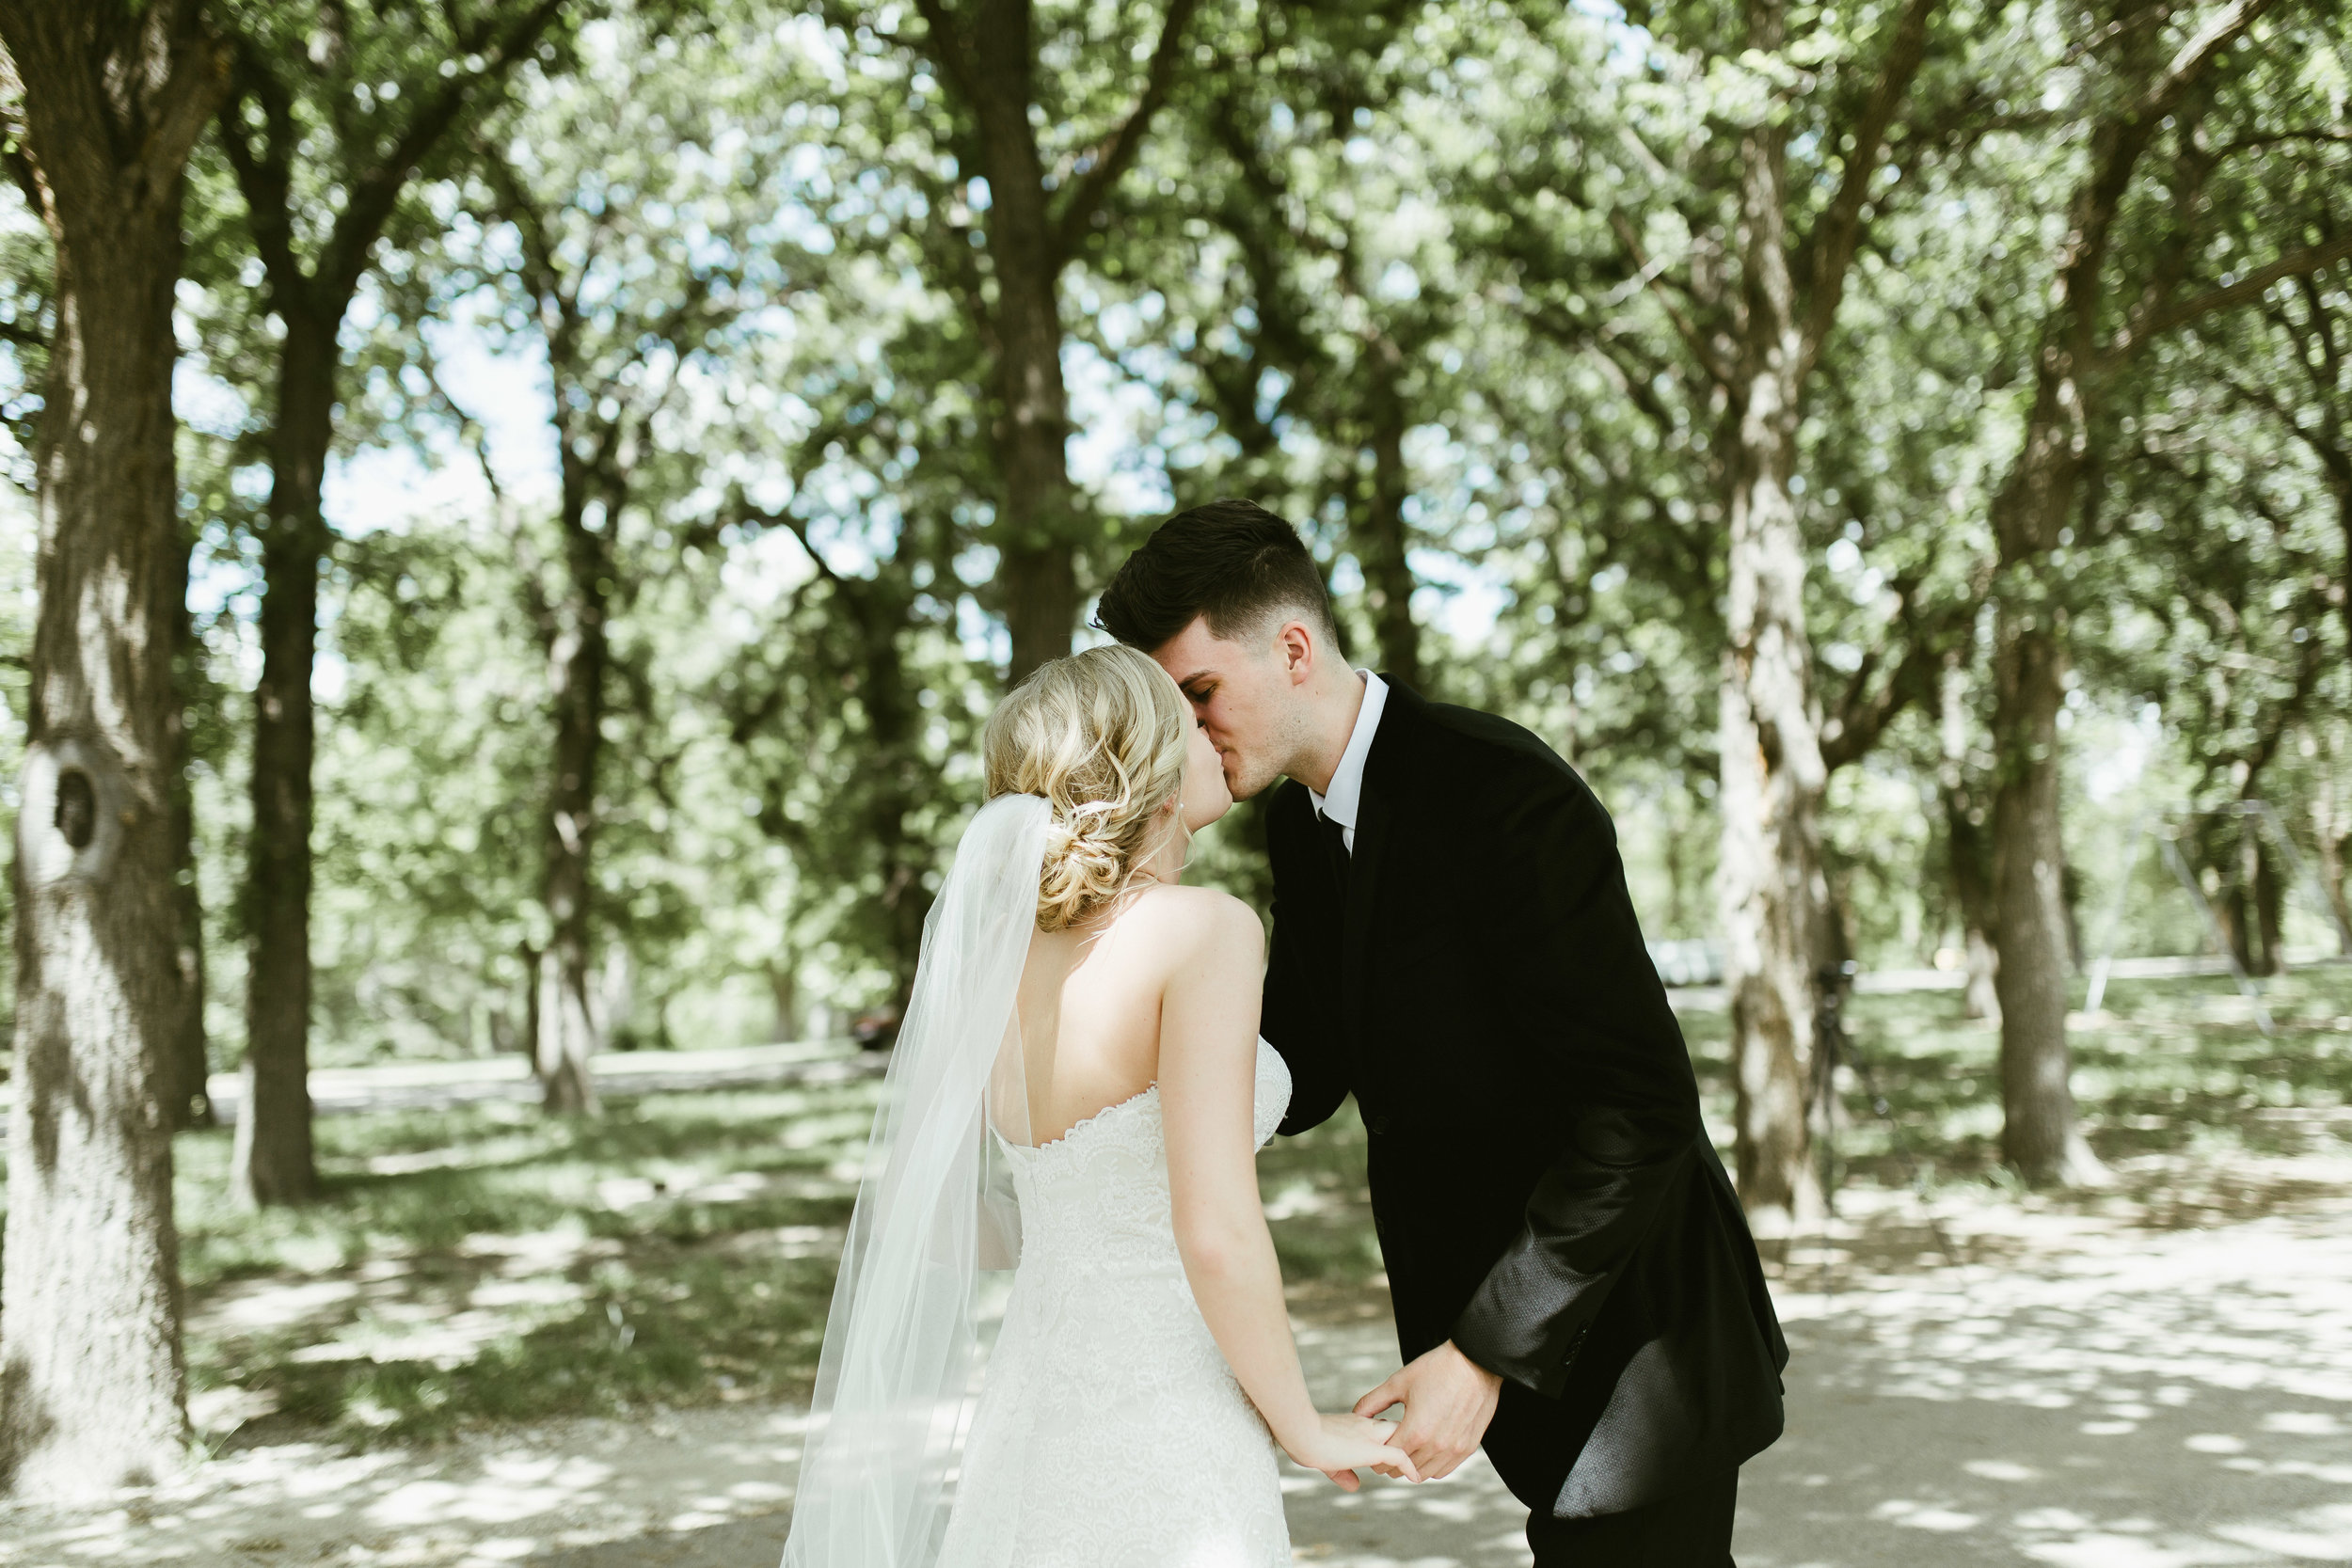 Megan&JaredMarried-184.jpg